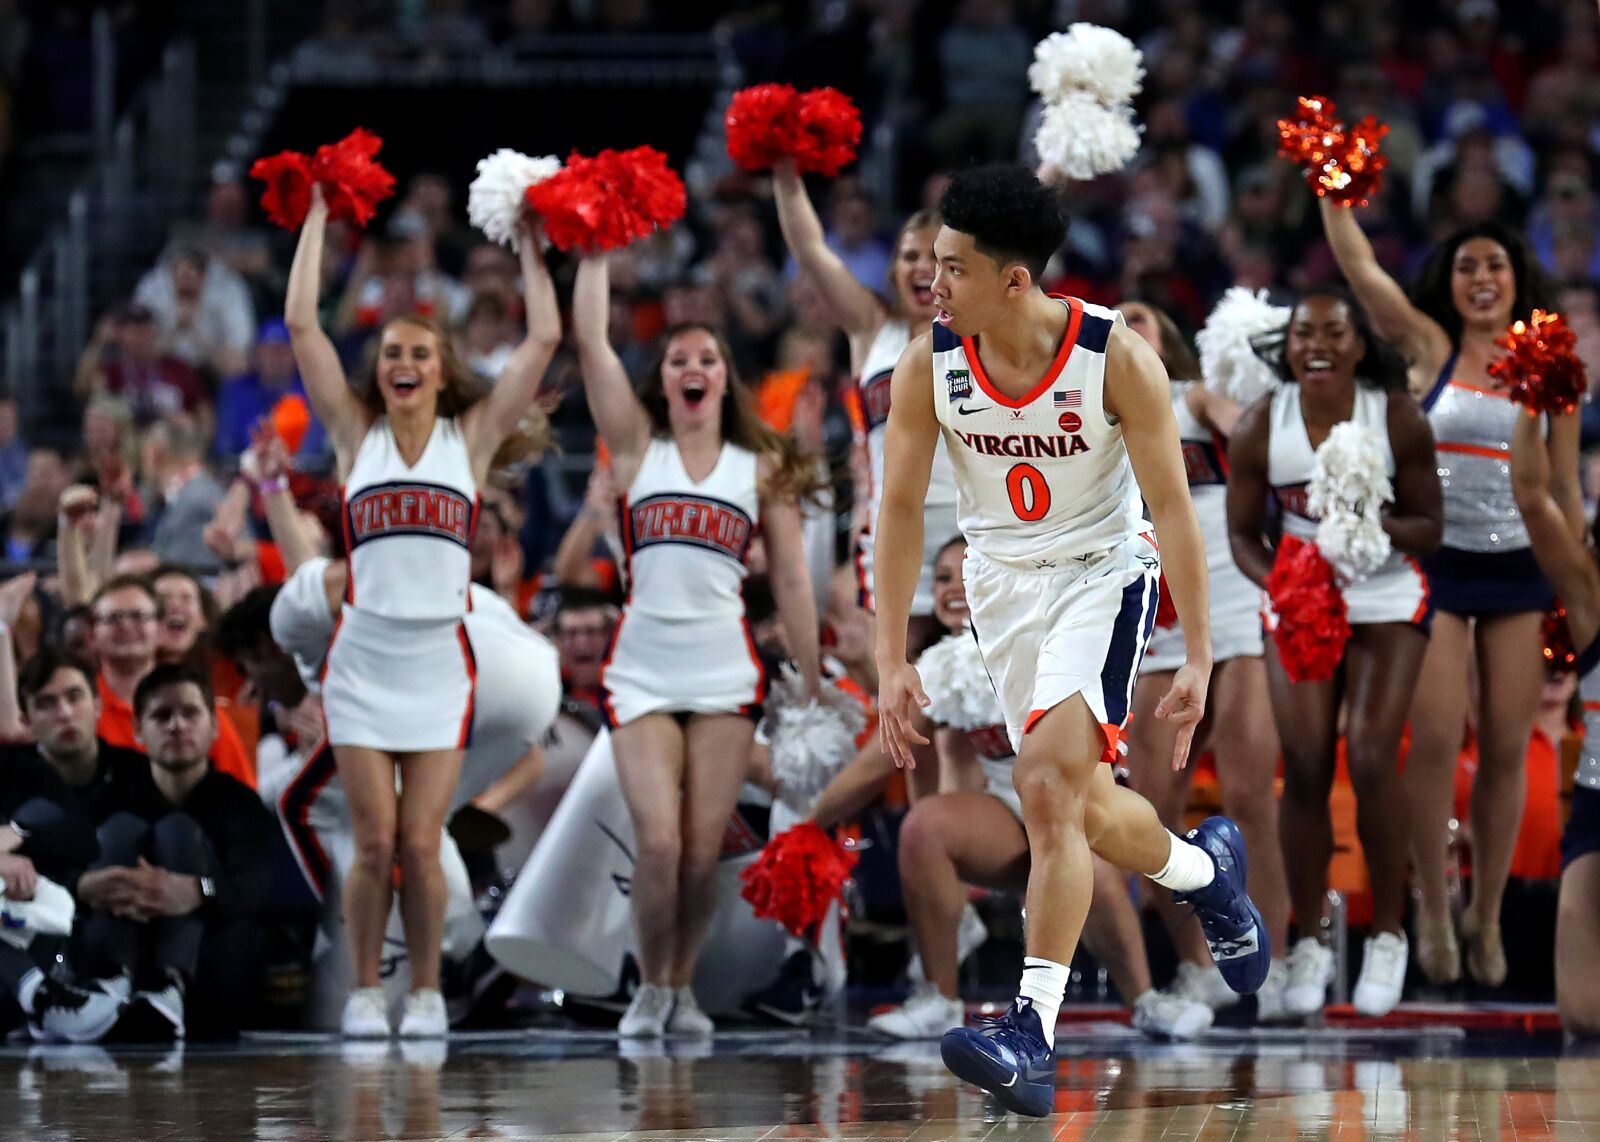 Virginia Basketball: 2019-20 season preview for the Cavaliers